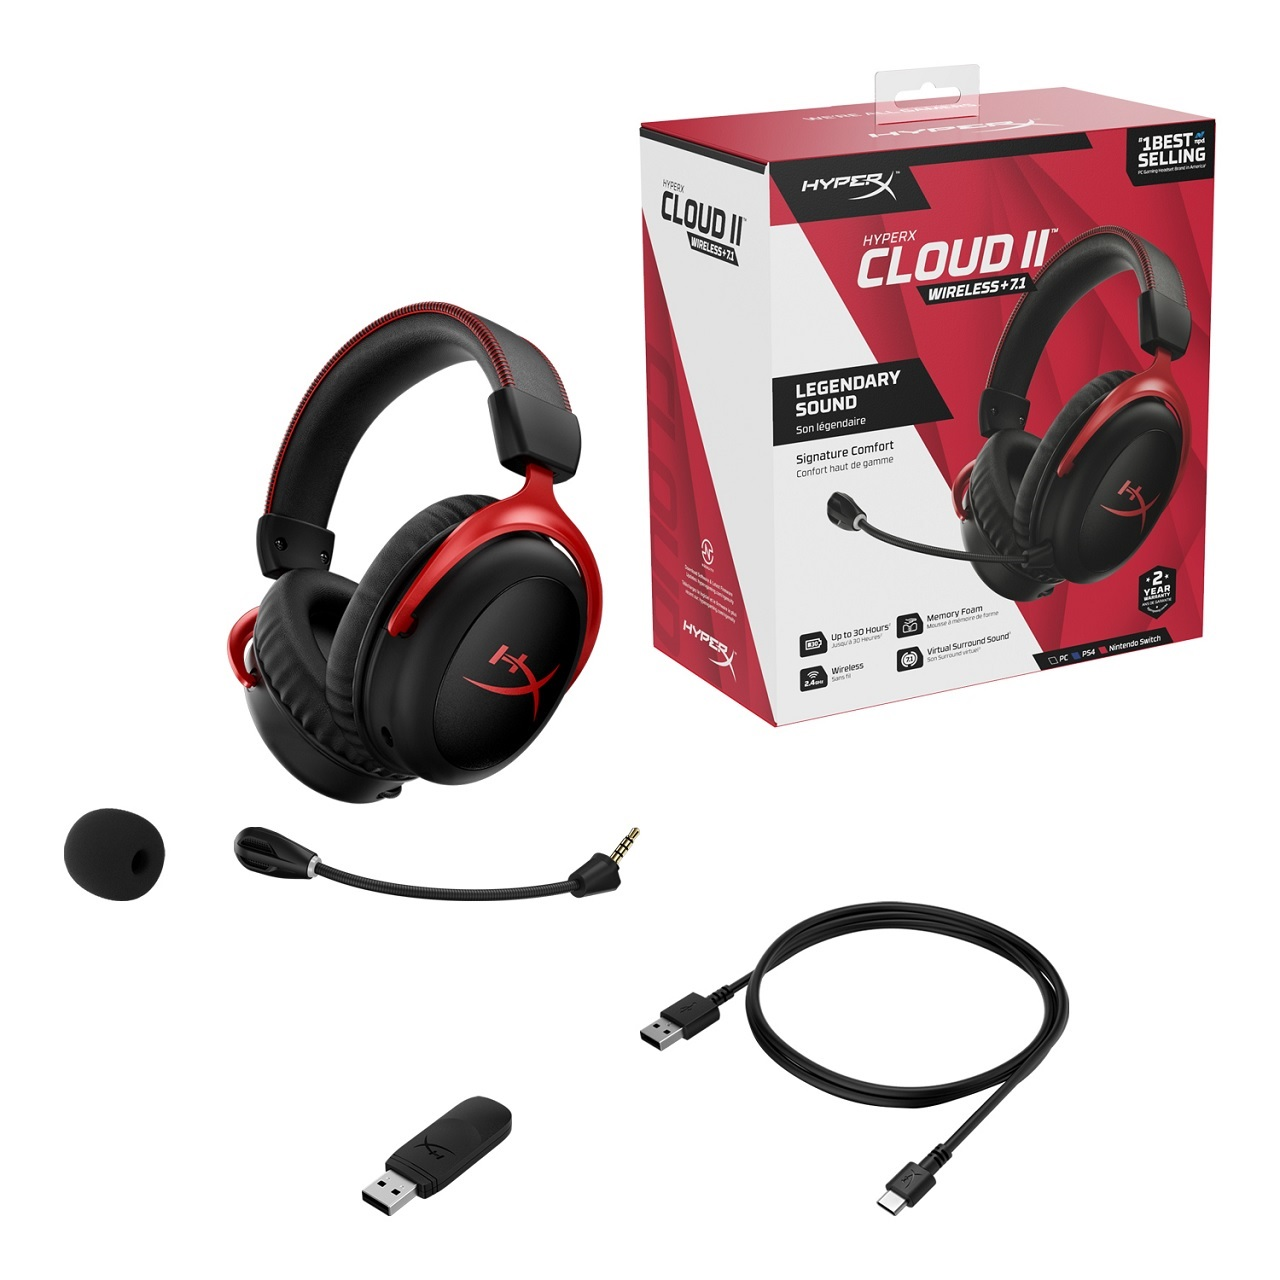 The full contents of the HyperX Cloud 2 Wireless gaming headset can be seen above, featuring a detachable mic and removable boom filter, USB transmitter, and USB-to-mini-USB charge and connection cable.